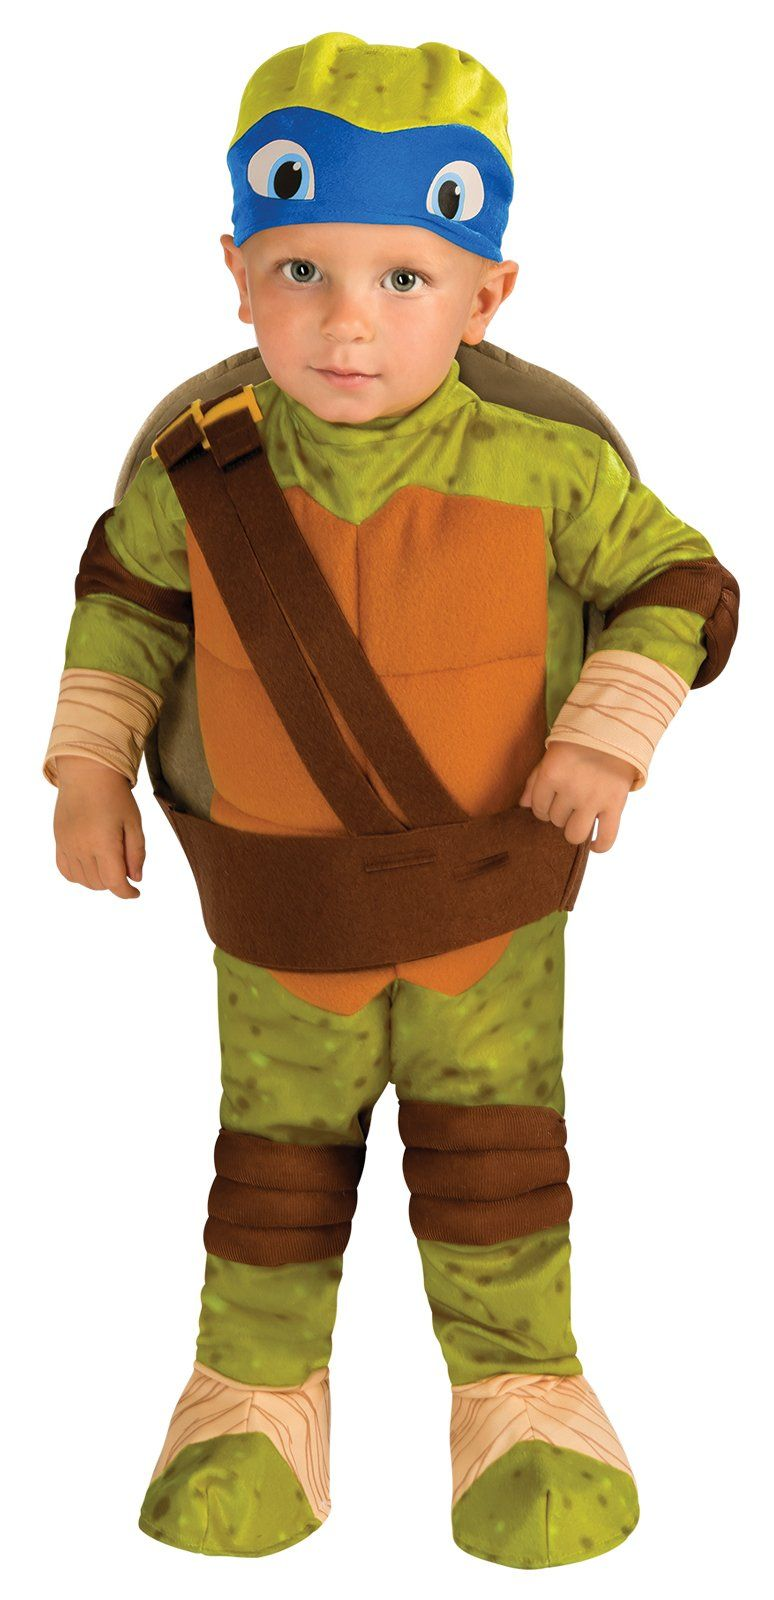 Teenage Mutant Ninja Turtle - Leonardo Toddler Costume***This is what my son Brody is wearing this Halloween!!! Purchased and ready.. I canu0027t remember ...  sc 1 st  Pinterest & Leonardo Toddler Ninja Turtles Costume | Pinterest | Ninja turtle ...